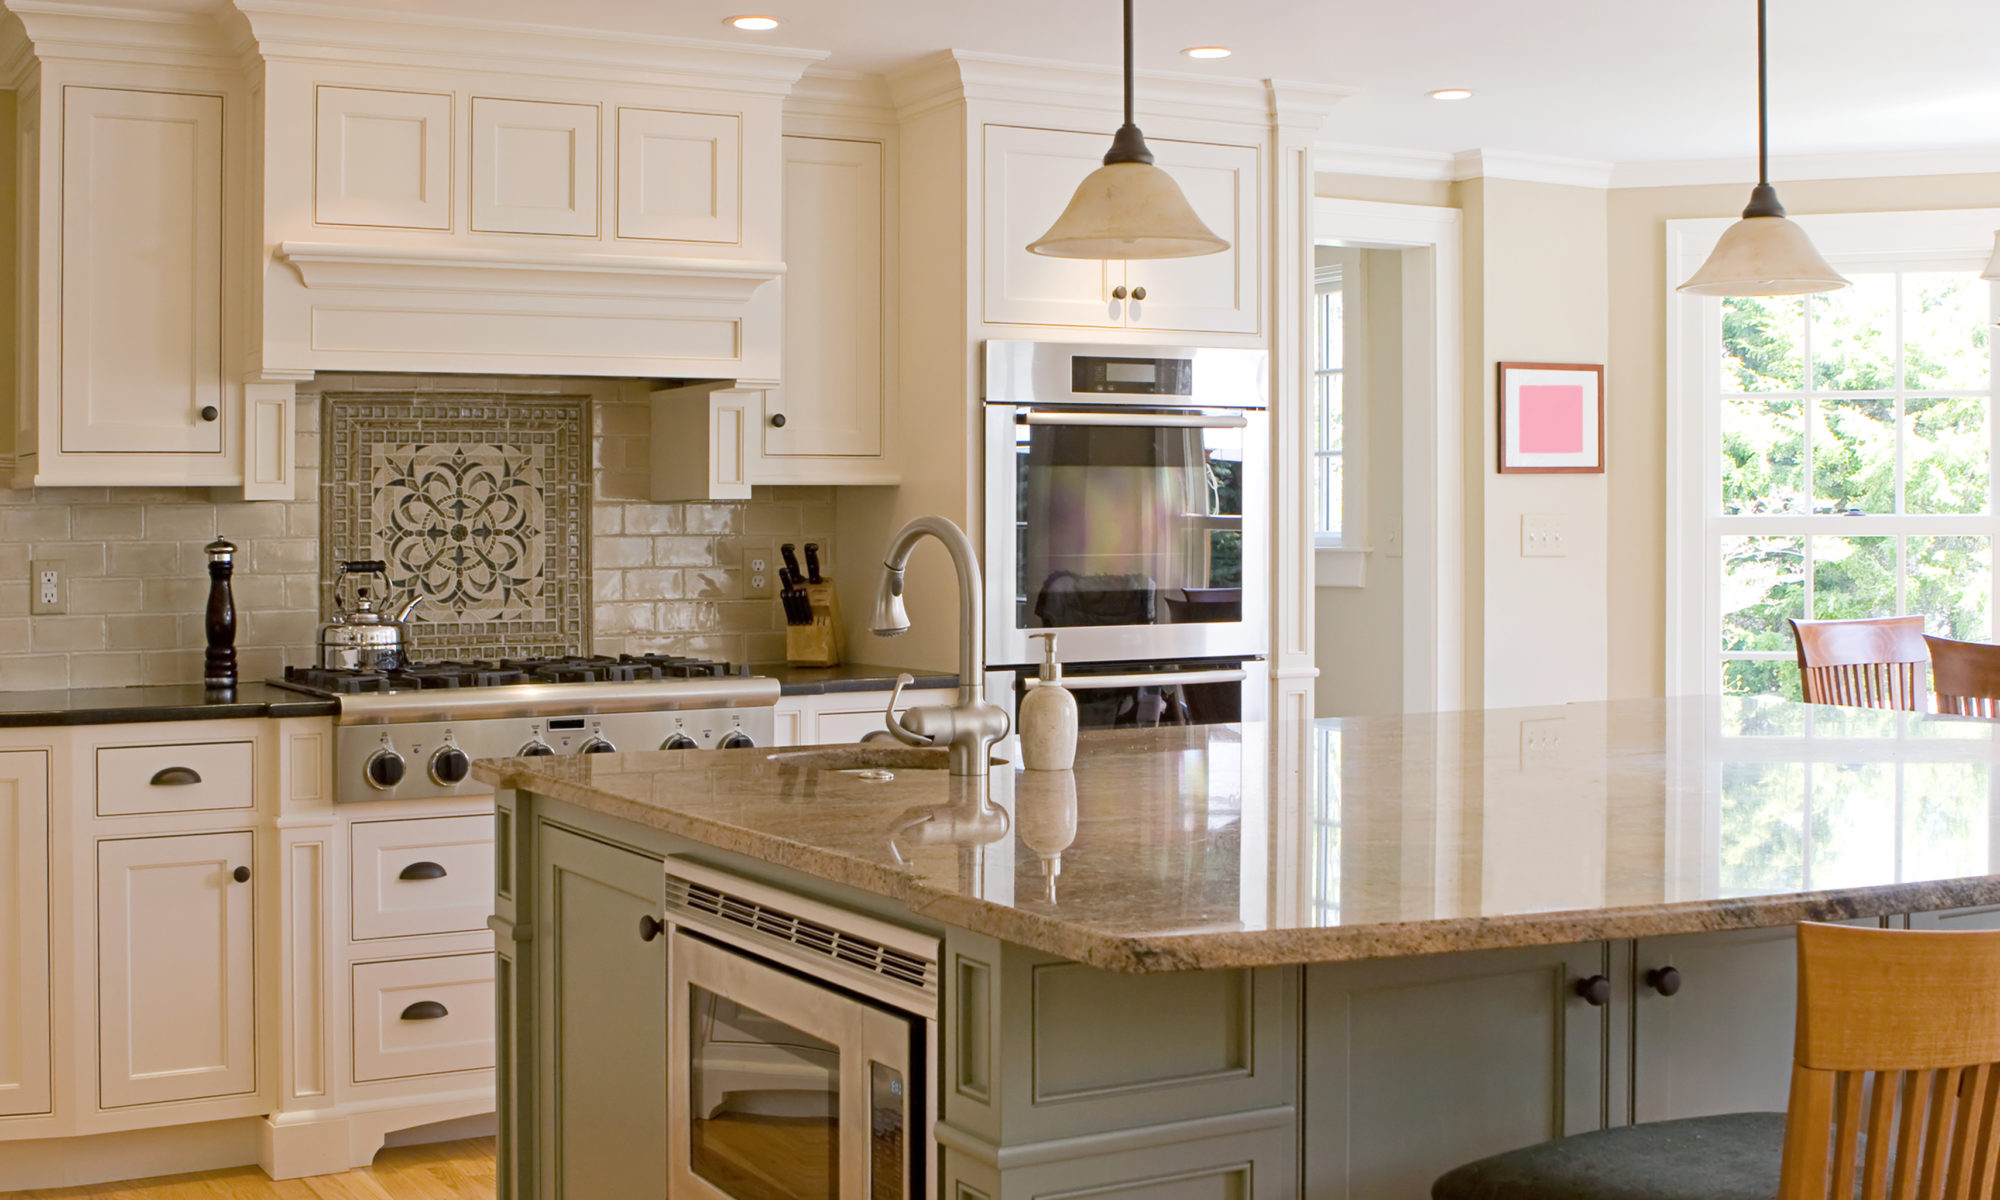 The Importance of Kitchen Decor